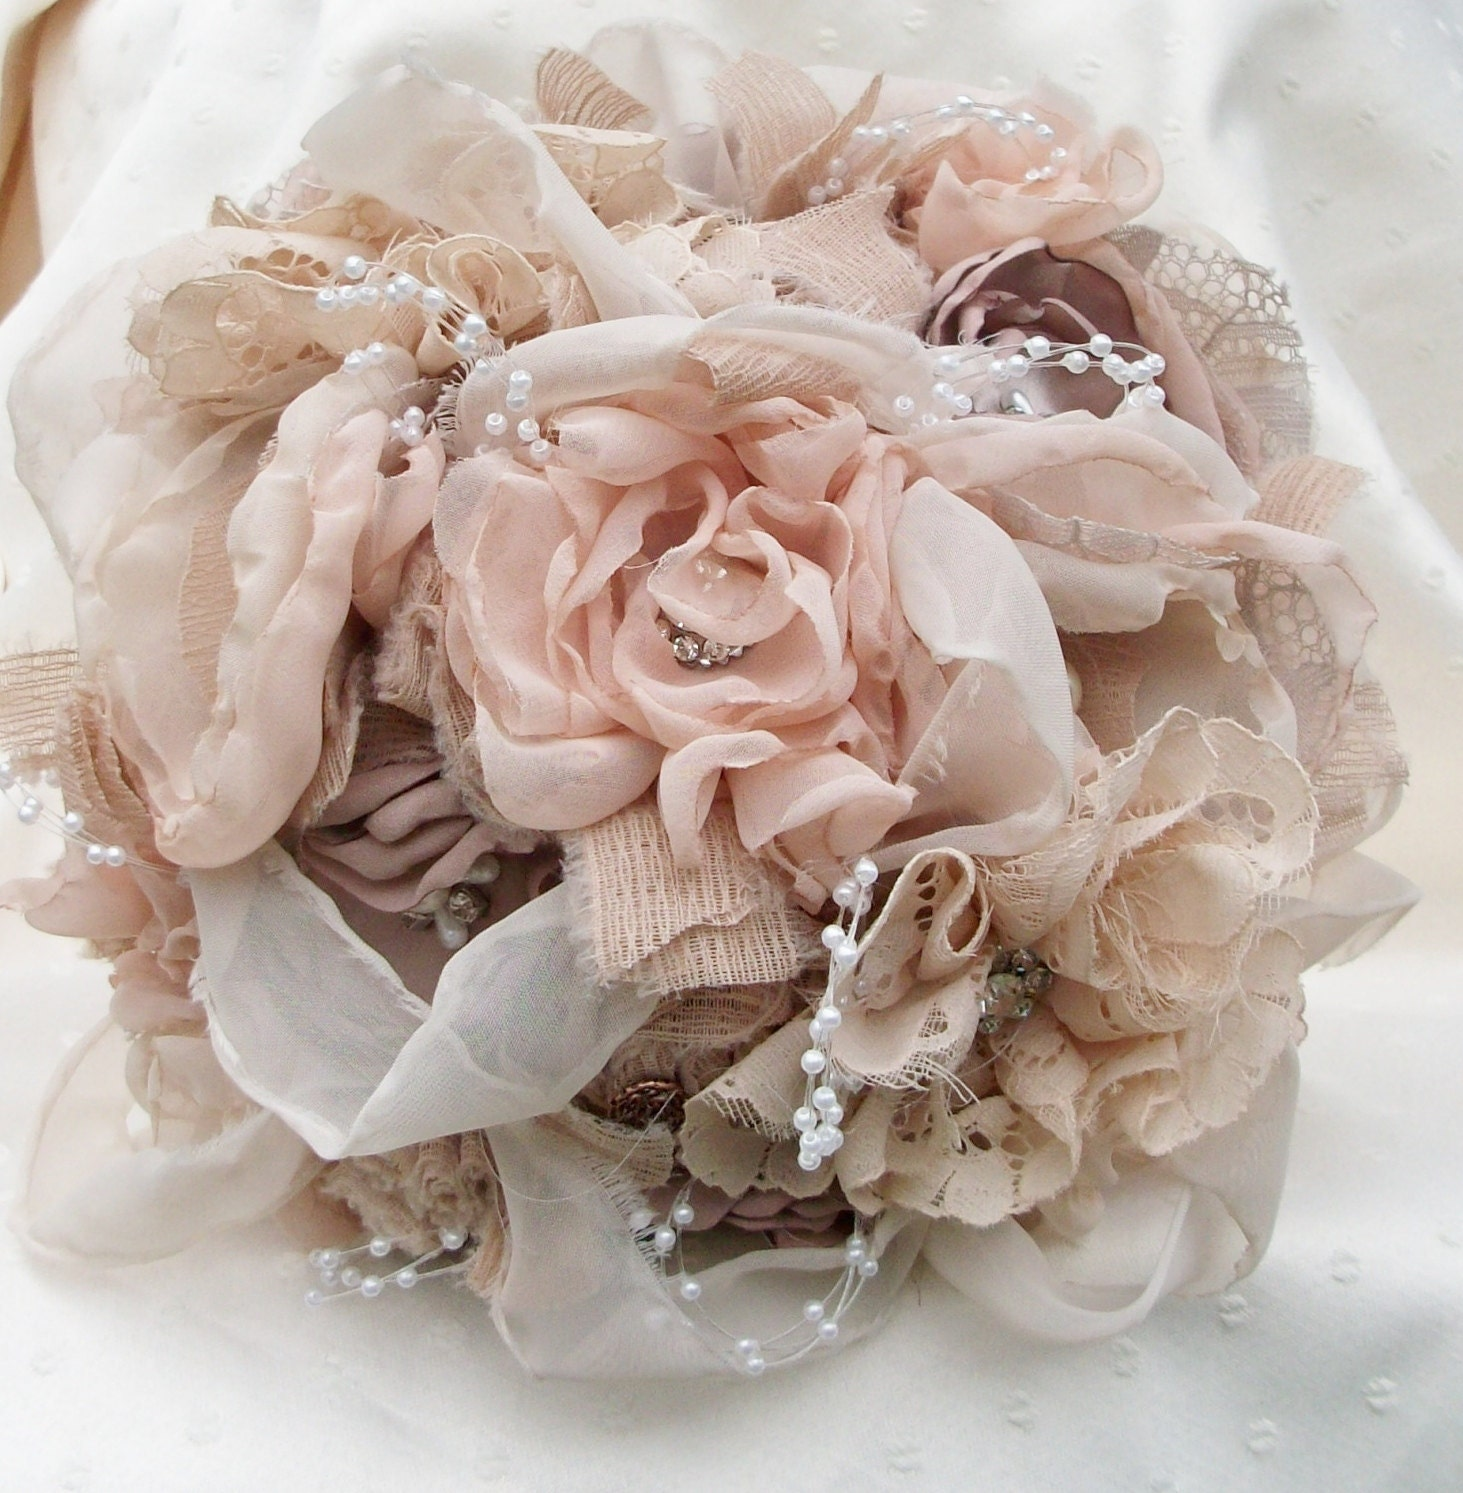 Bridal Bouquet Materials : Fabric bouquet vintage inspired by apromisemadetoday